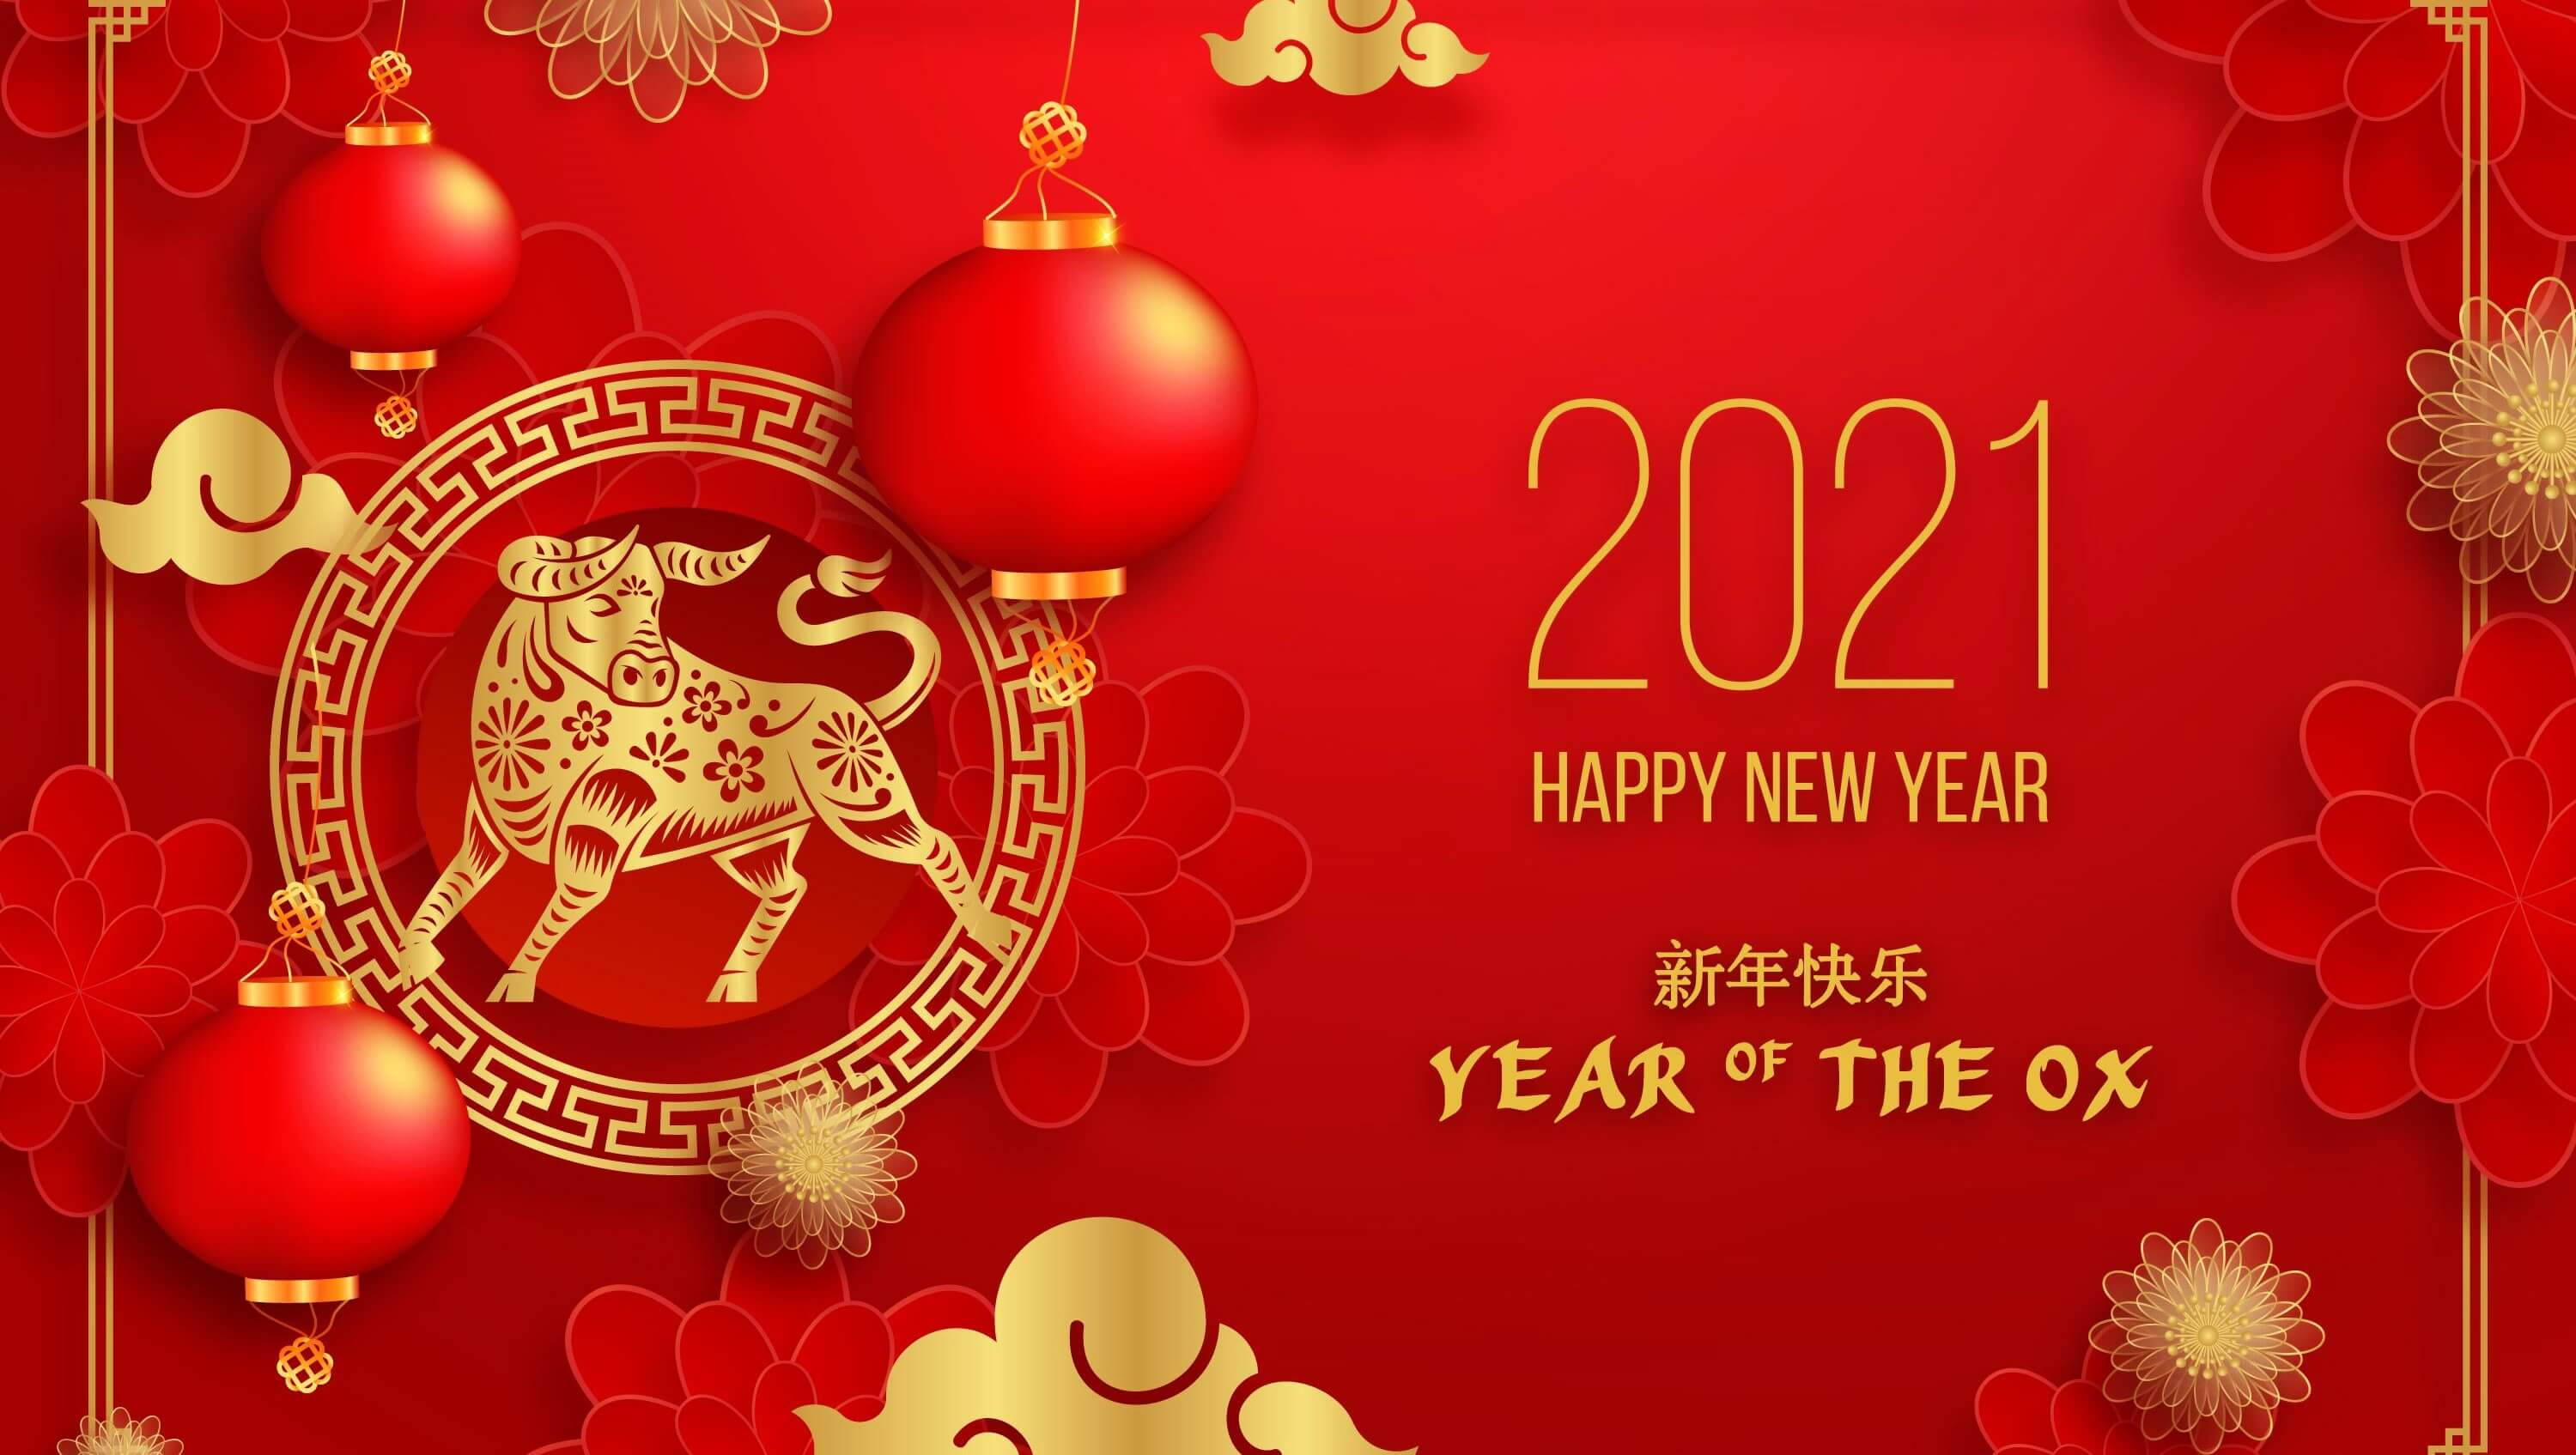 Chinese New Year special: Best deals, all you need to know & fun facts